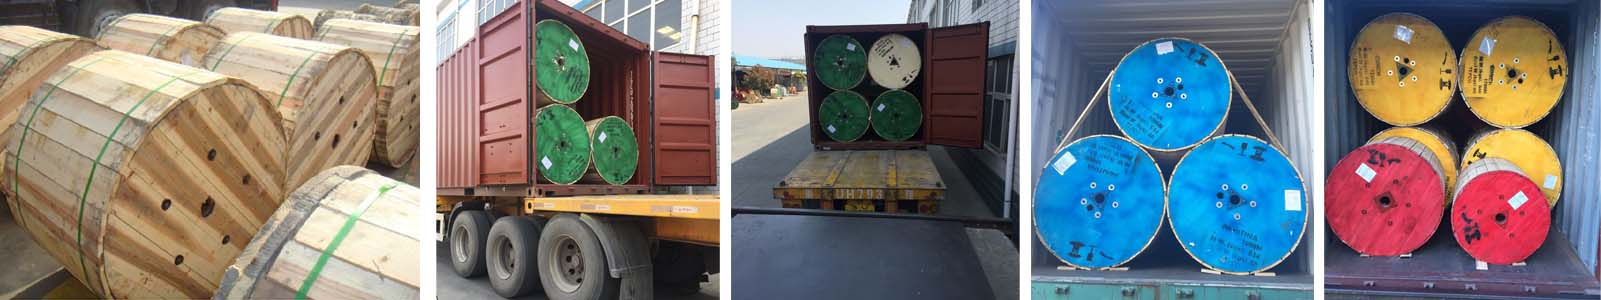 unarmoured cable transportation